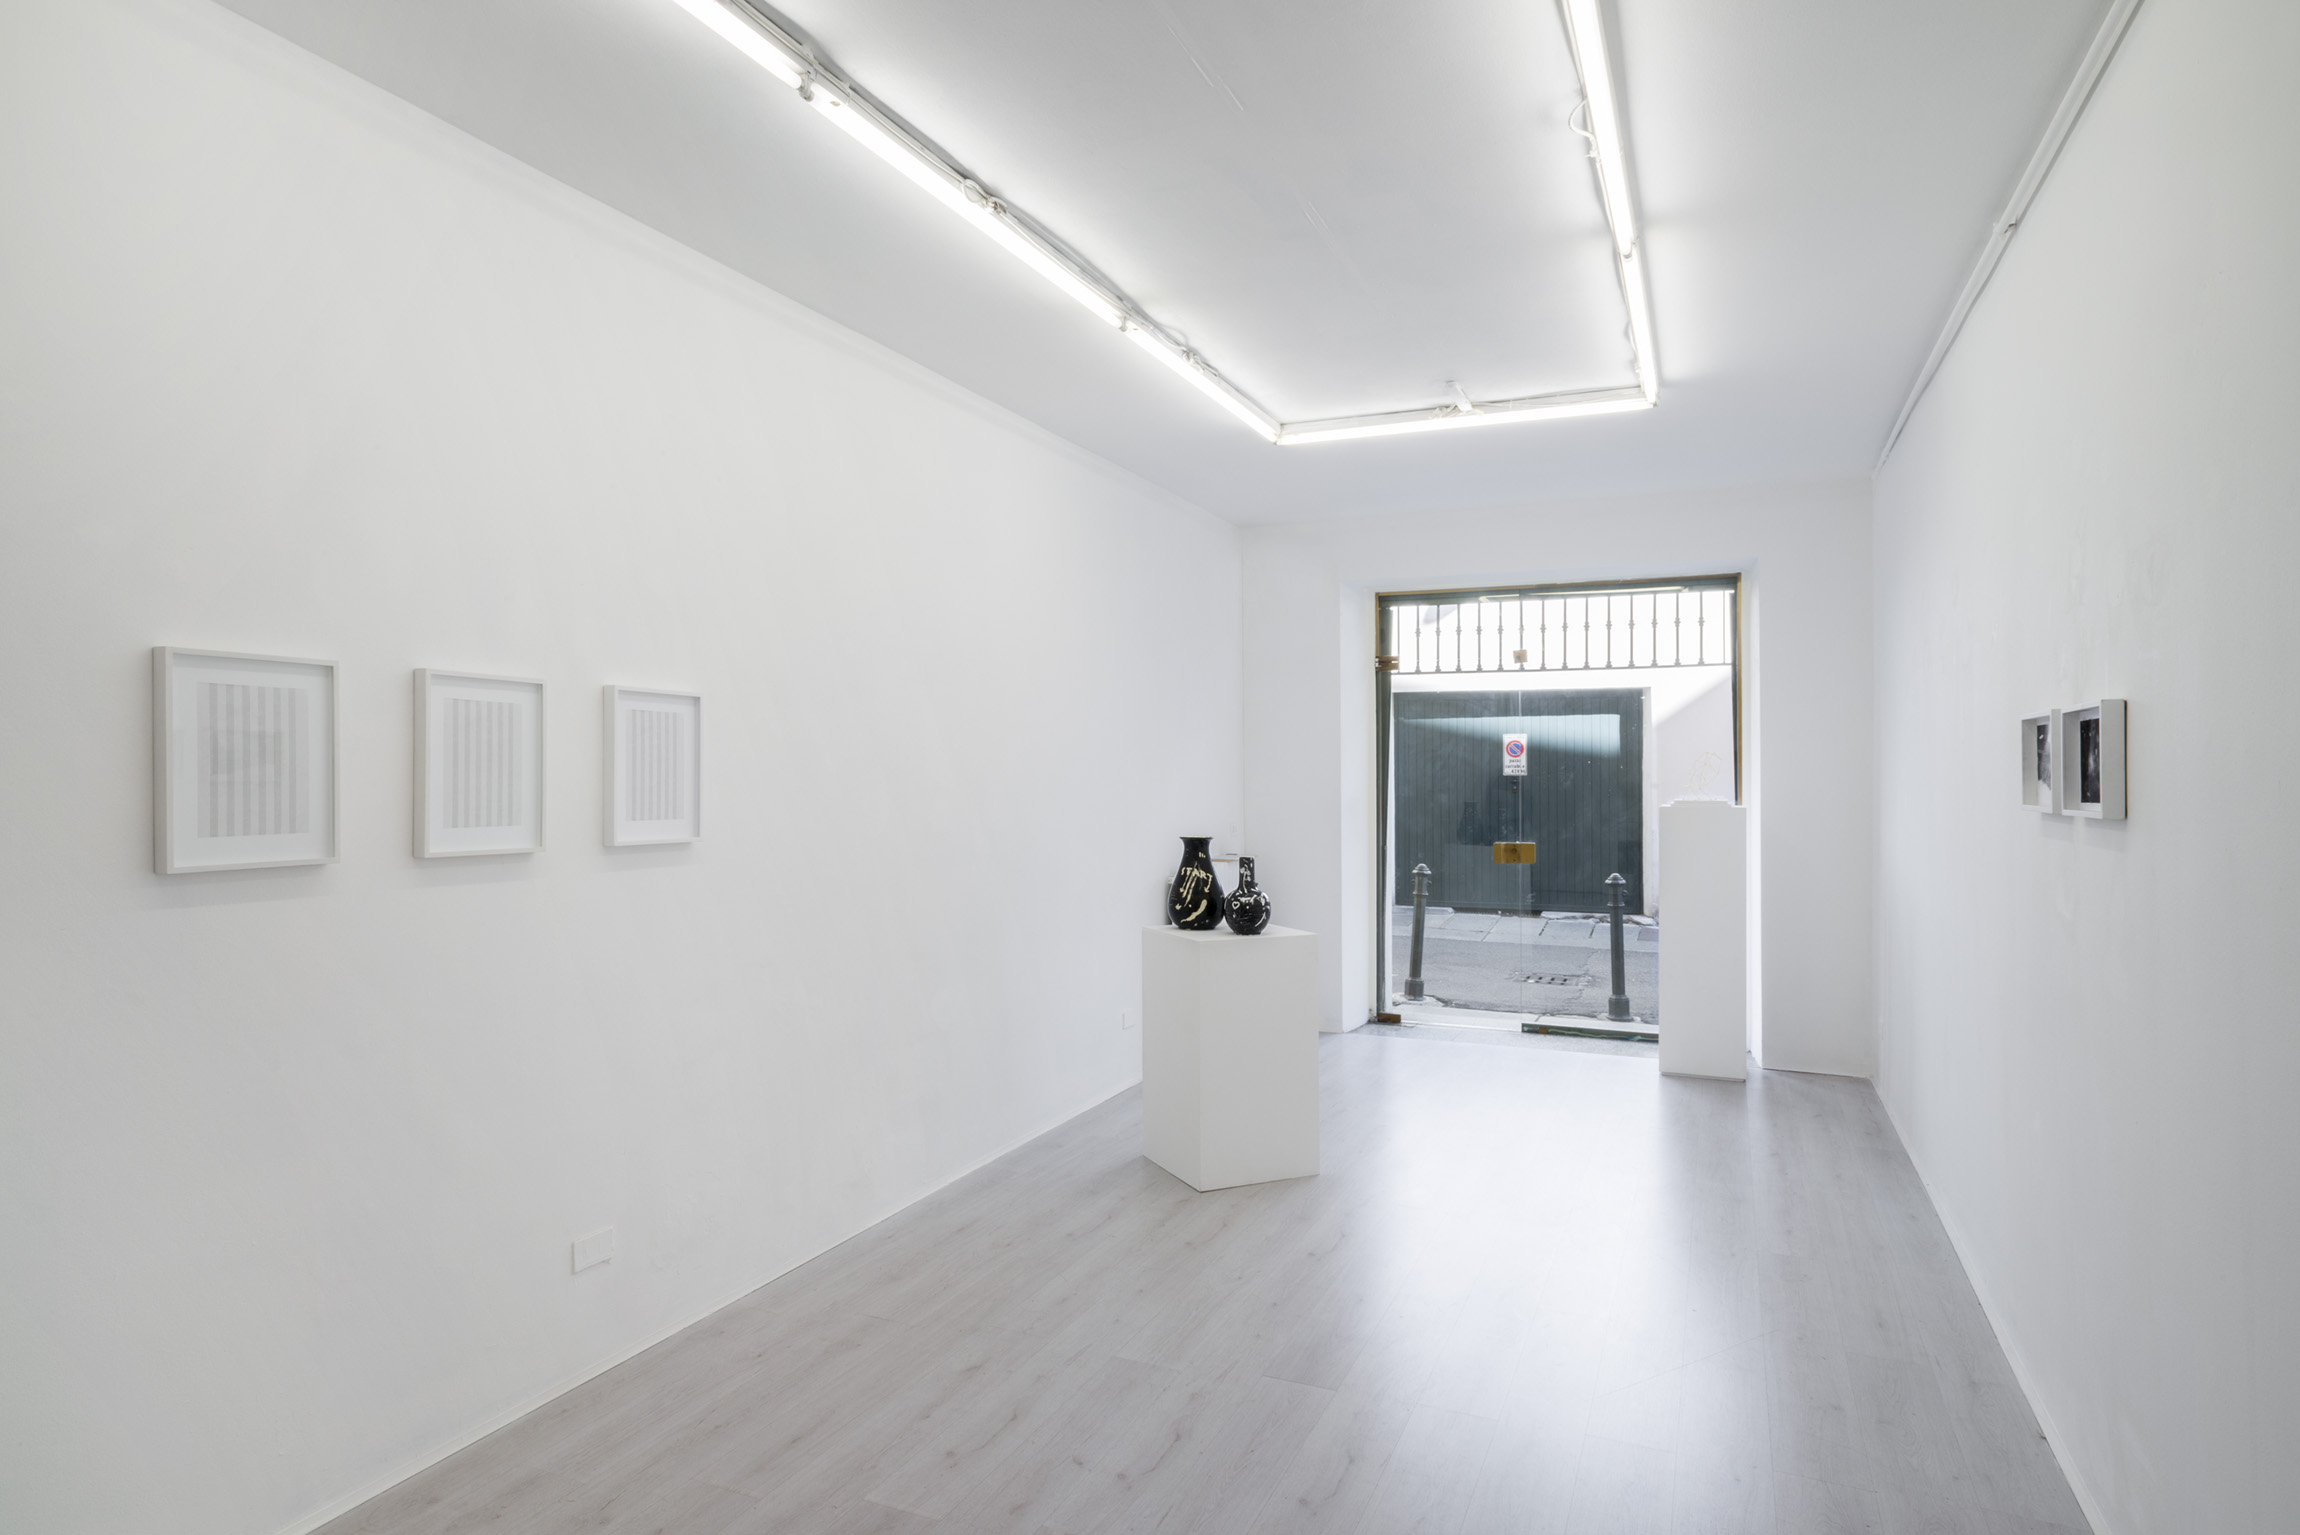 3. Gianluca Codeghini -Solo Noise- exhibition view at A+B gallery Brescia